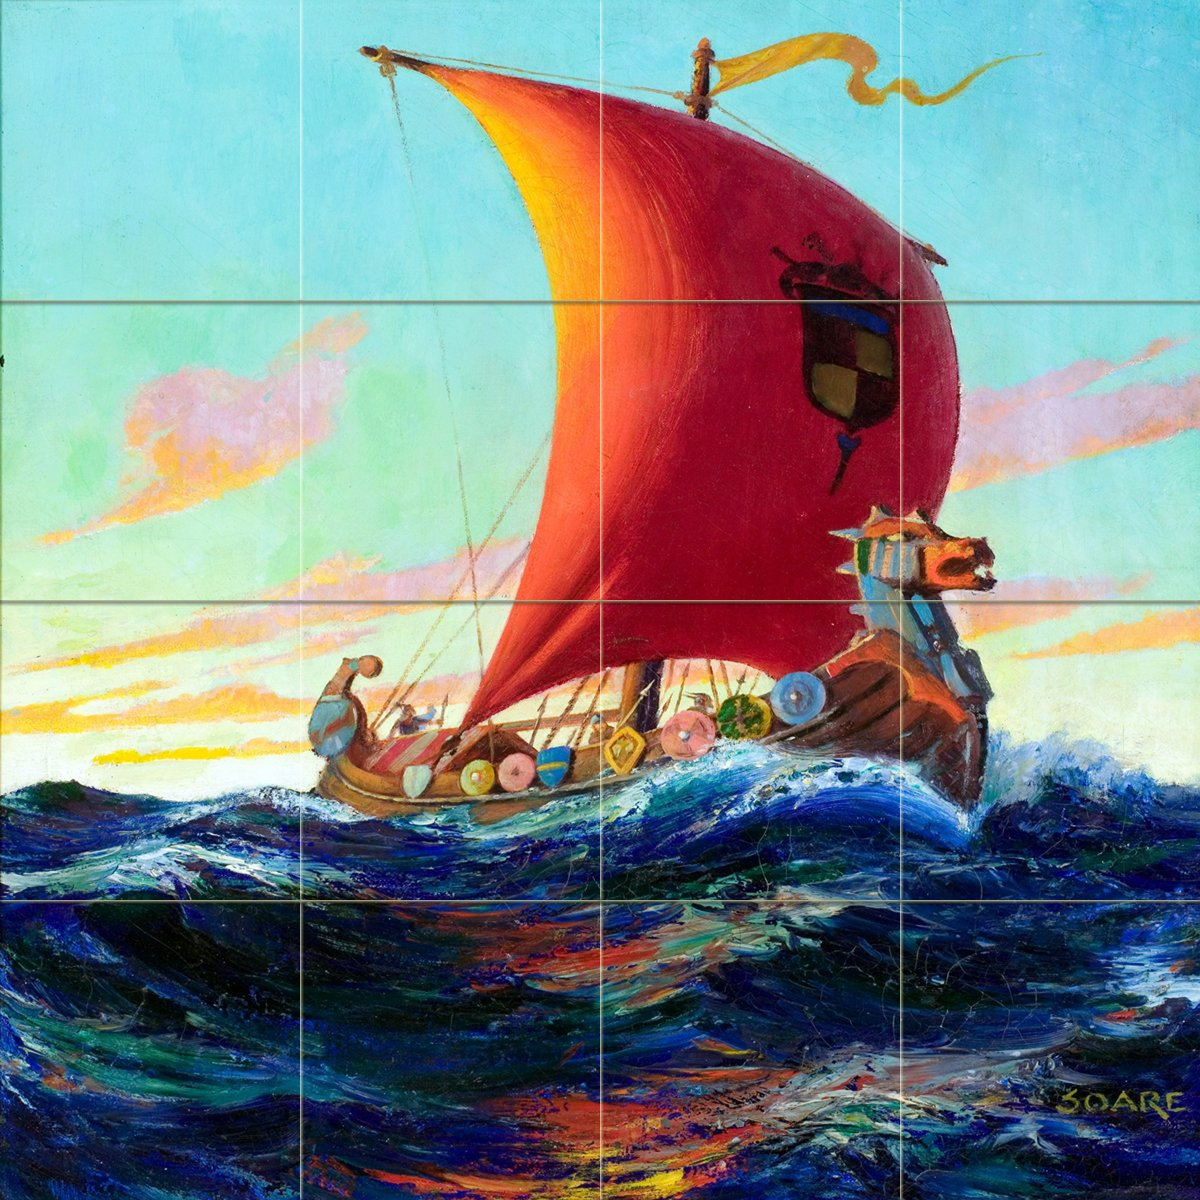 Seascape pirate ship captain's boat sea waves by William Fulton Soare Tile Mural Kitchen Bathroom Wall Backsplash Behind Stove Range Sink Splashback 4x4 6'' Rialto by FlekmanArt